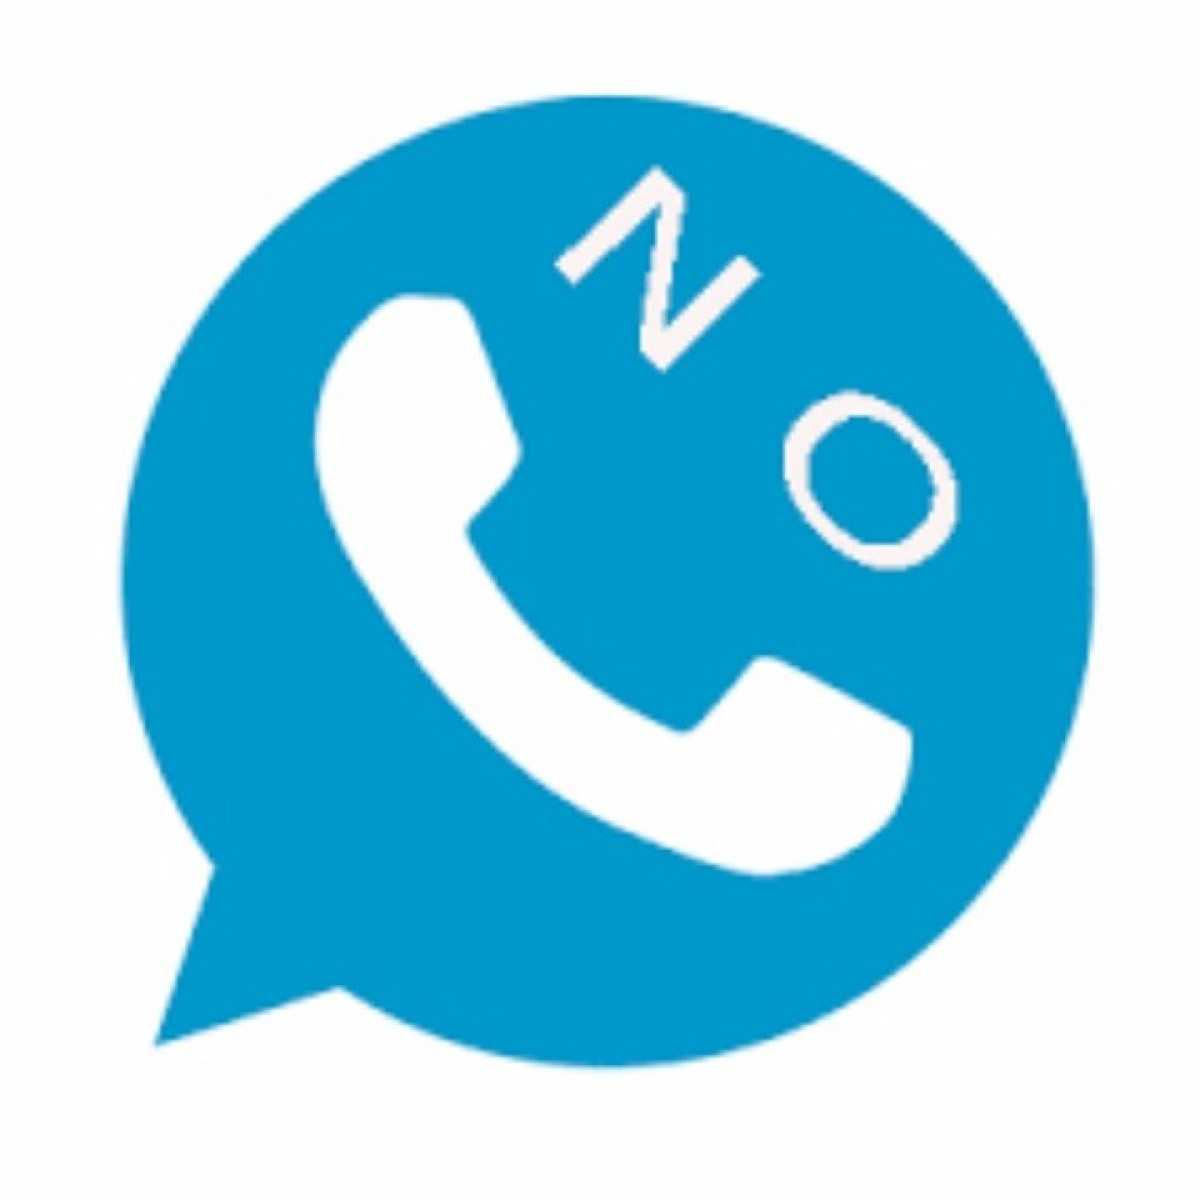 NOWhatsApp APK V9.92 (Today Updated) Download